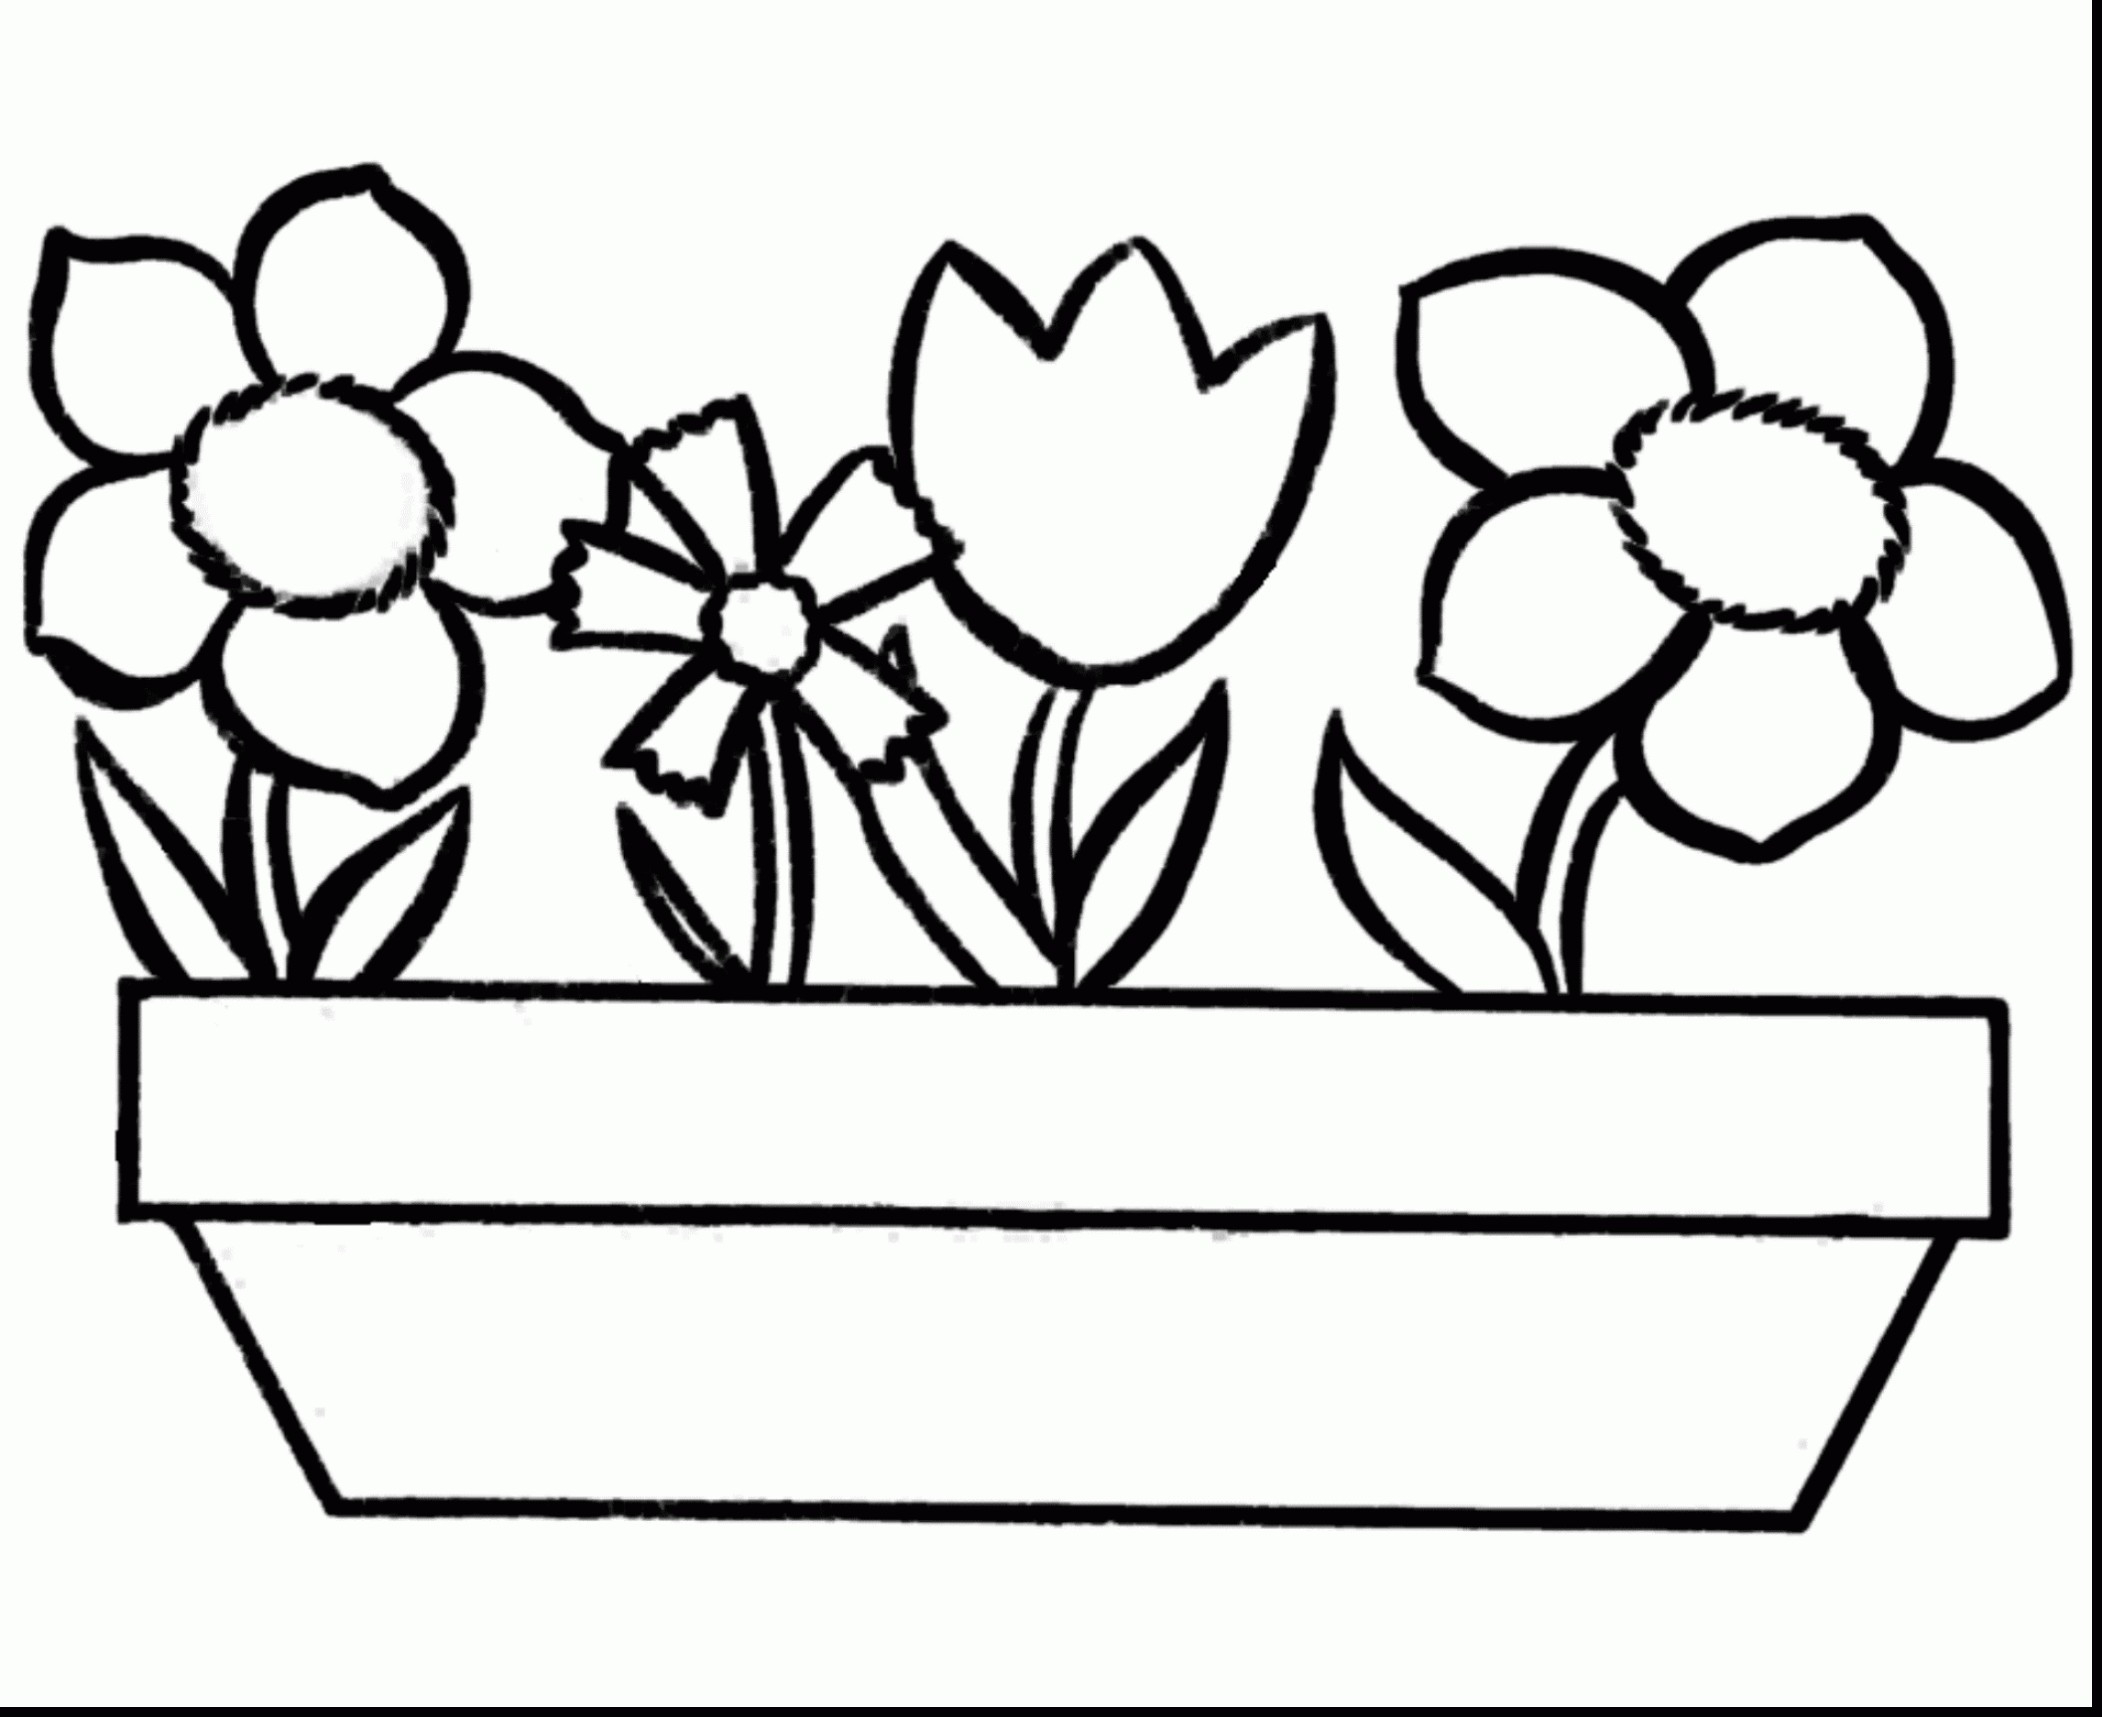 Rose Coloring Pages  to Print 17t - Save it to your computer